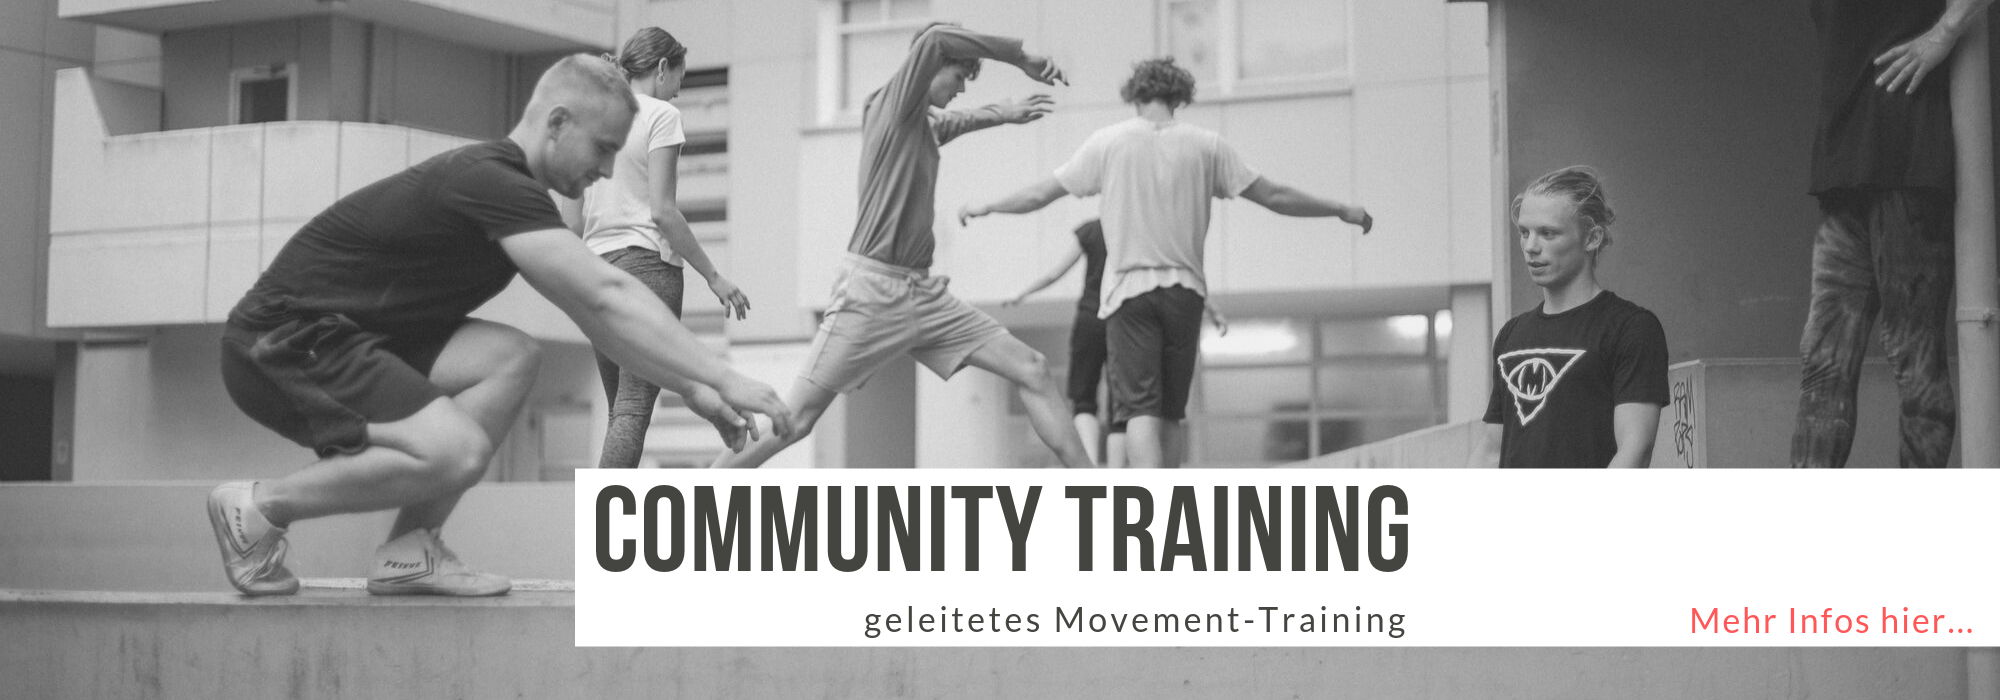 movision-community-training-header